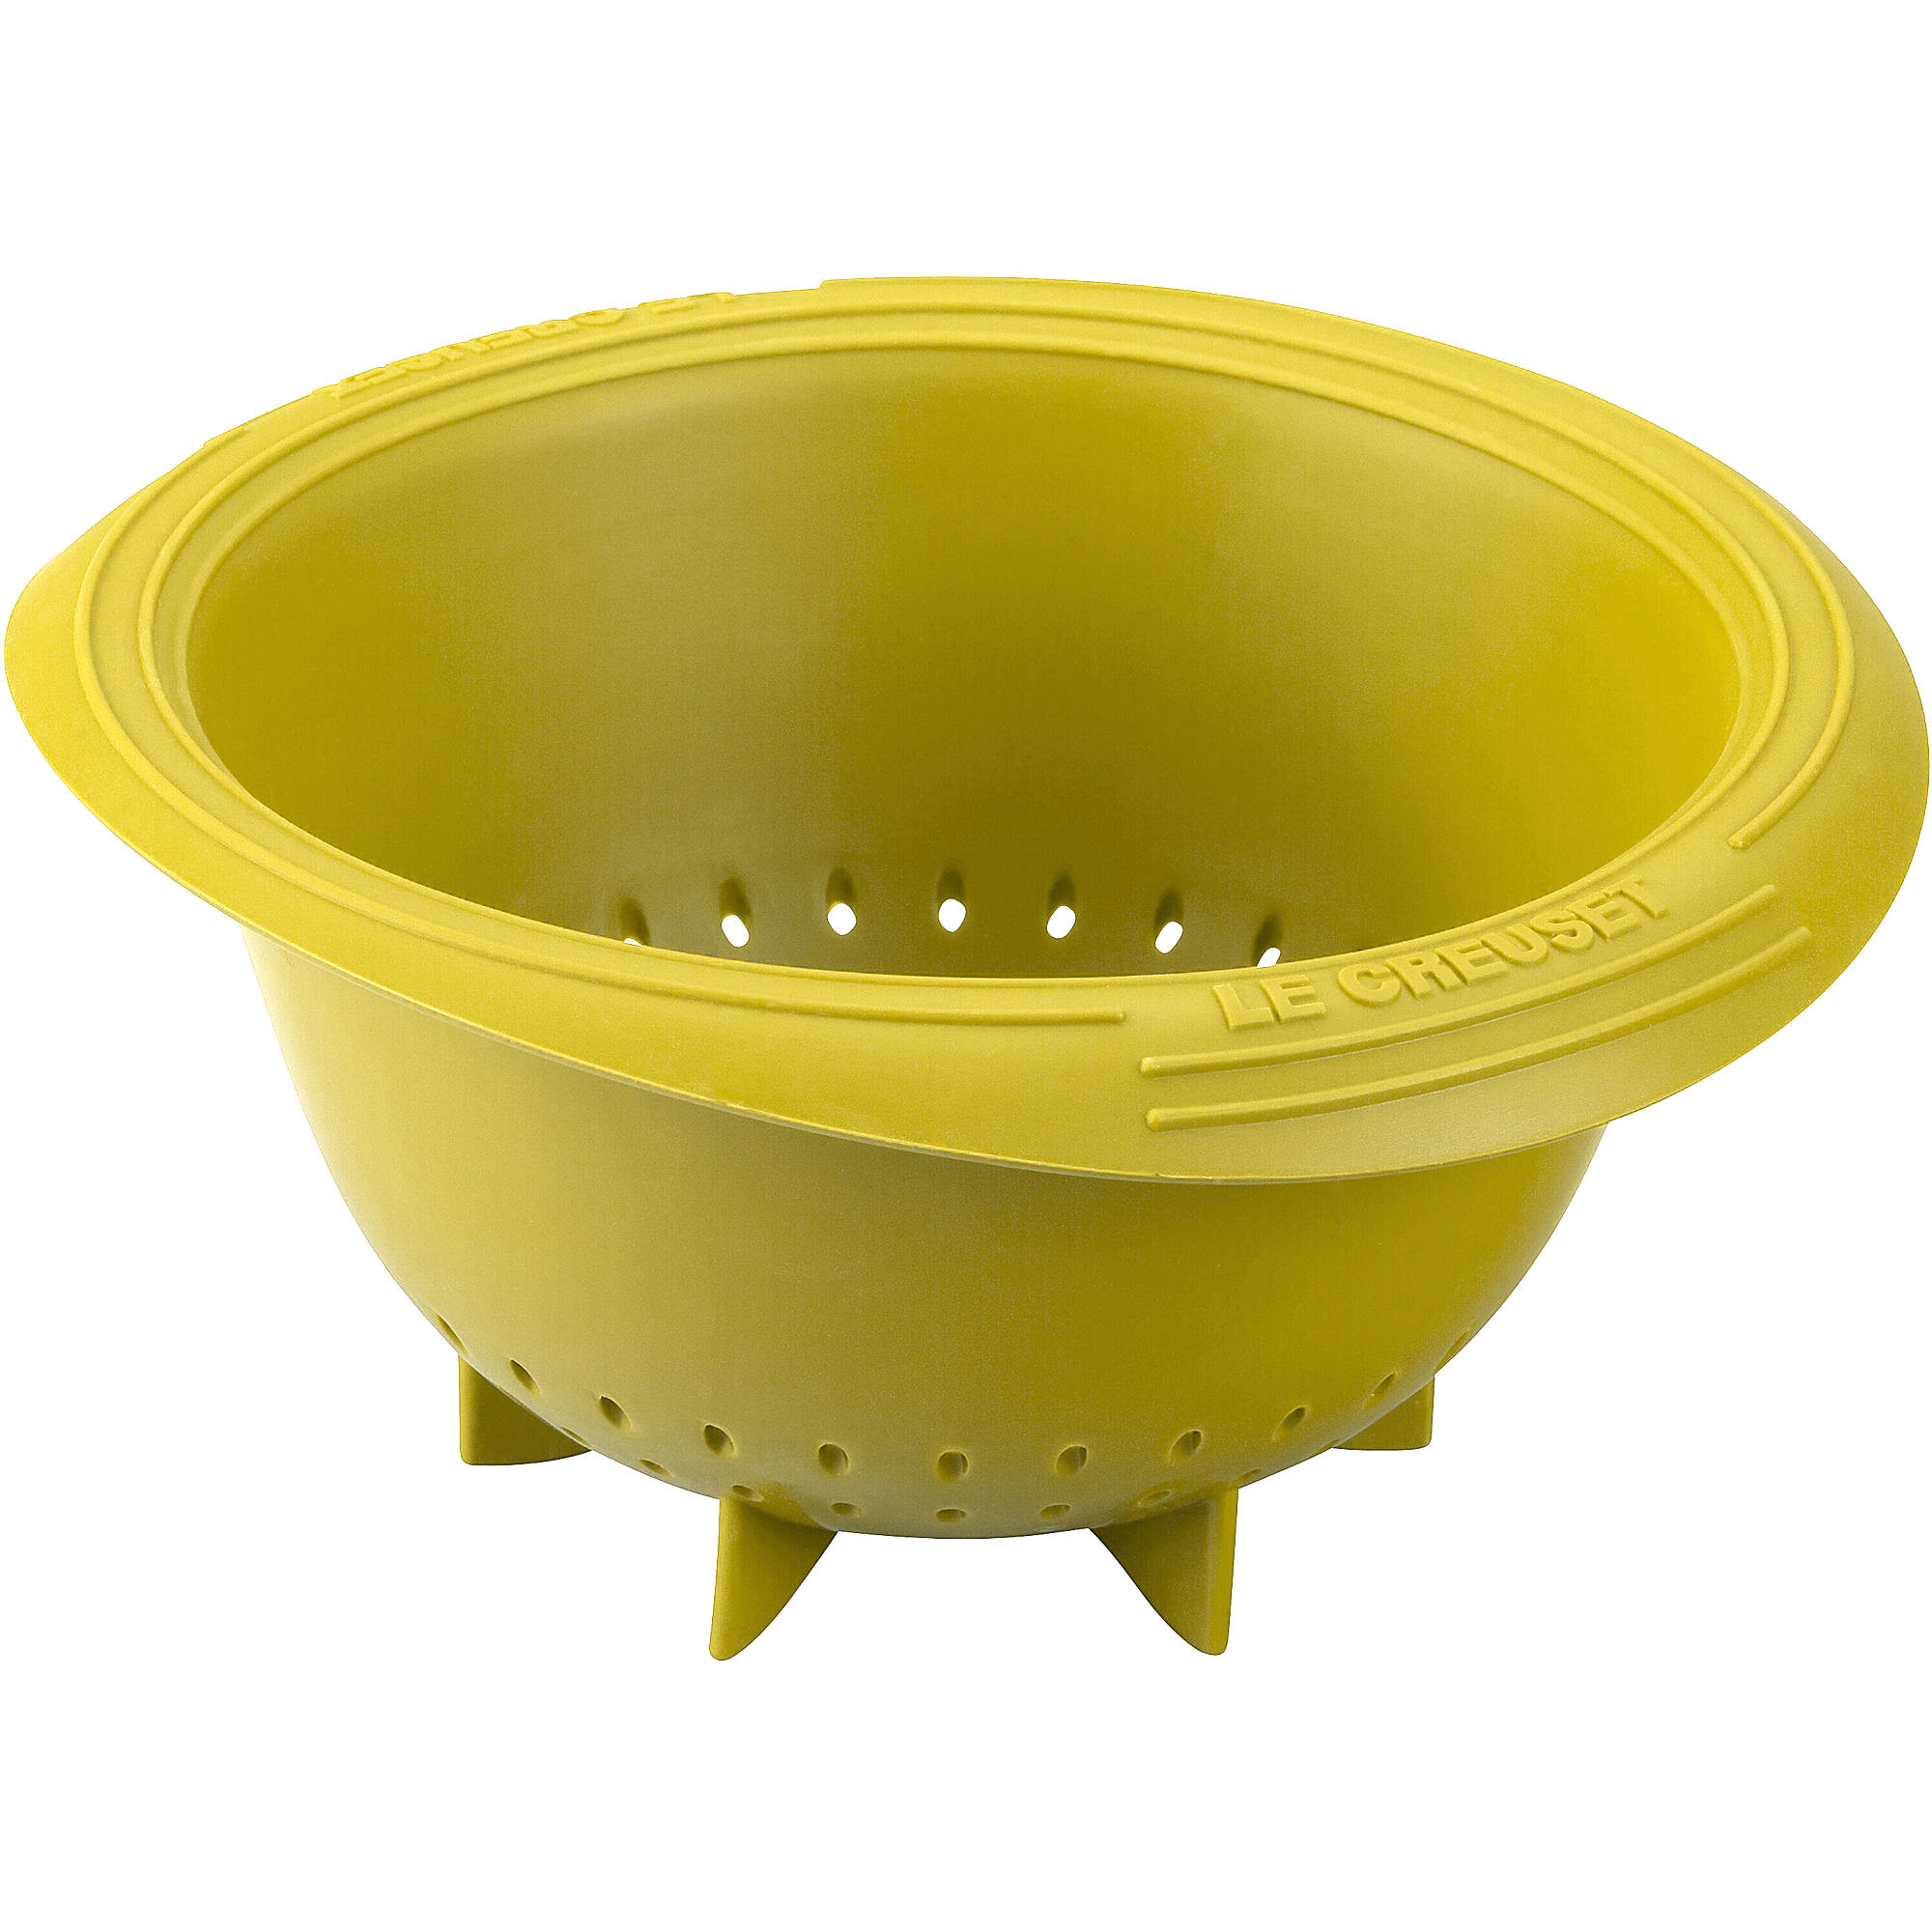 Le Creuset Soleil Yellow Silicone Berry Colander